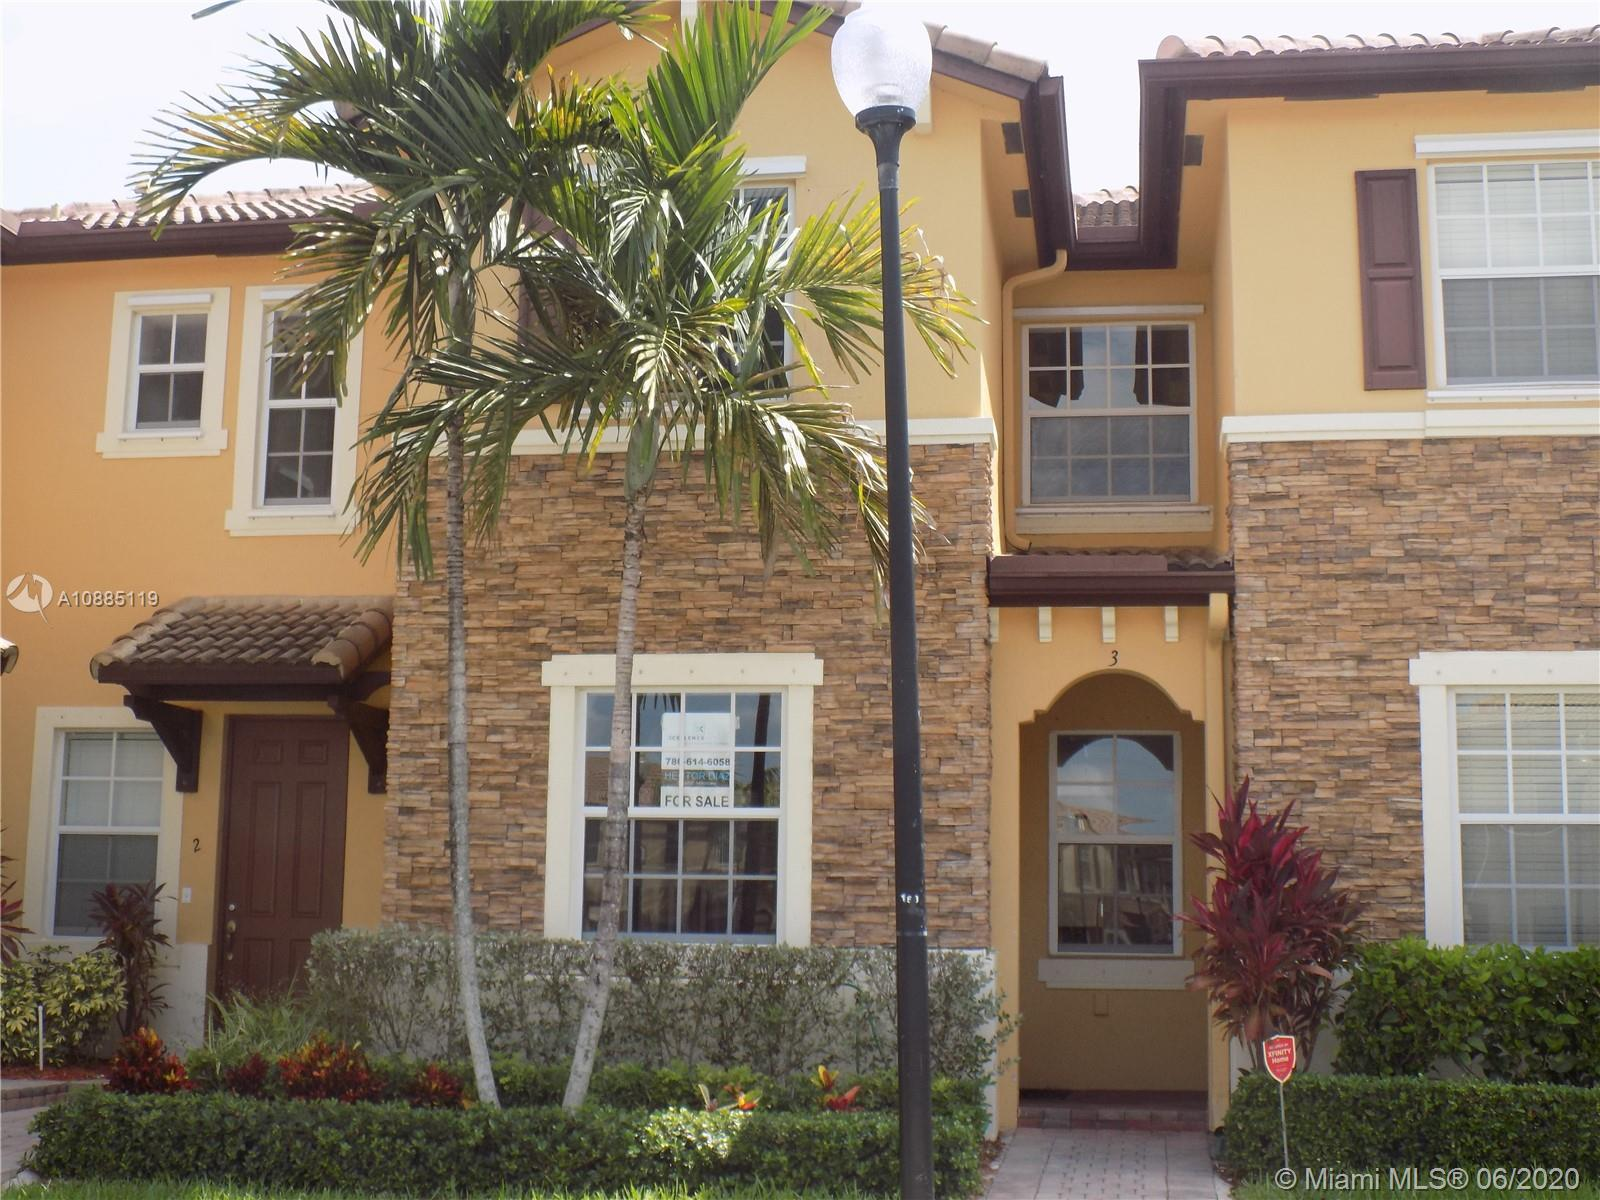 Beatiful Condo-Townhouse. 3 Bedroom with 2.5 baths at The Shores Subdivision of Isle of Bay Shore Built by Lennard, safe community with A+ Schools and recreation places like Black Point Marina. Perfect for a first time buyers, Beautiful Lake view, two story home built in 2011. Tile downstairs, formal dining room, great Kitchen, carpet on  2nd floor.  Property is in moving condition. No reserves. Minimum 10% down. Seller motivated.